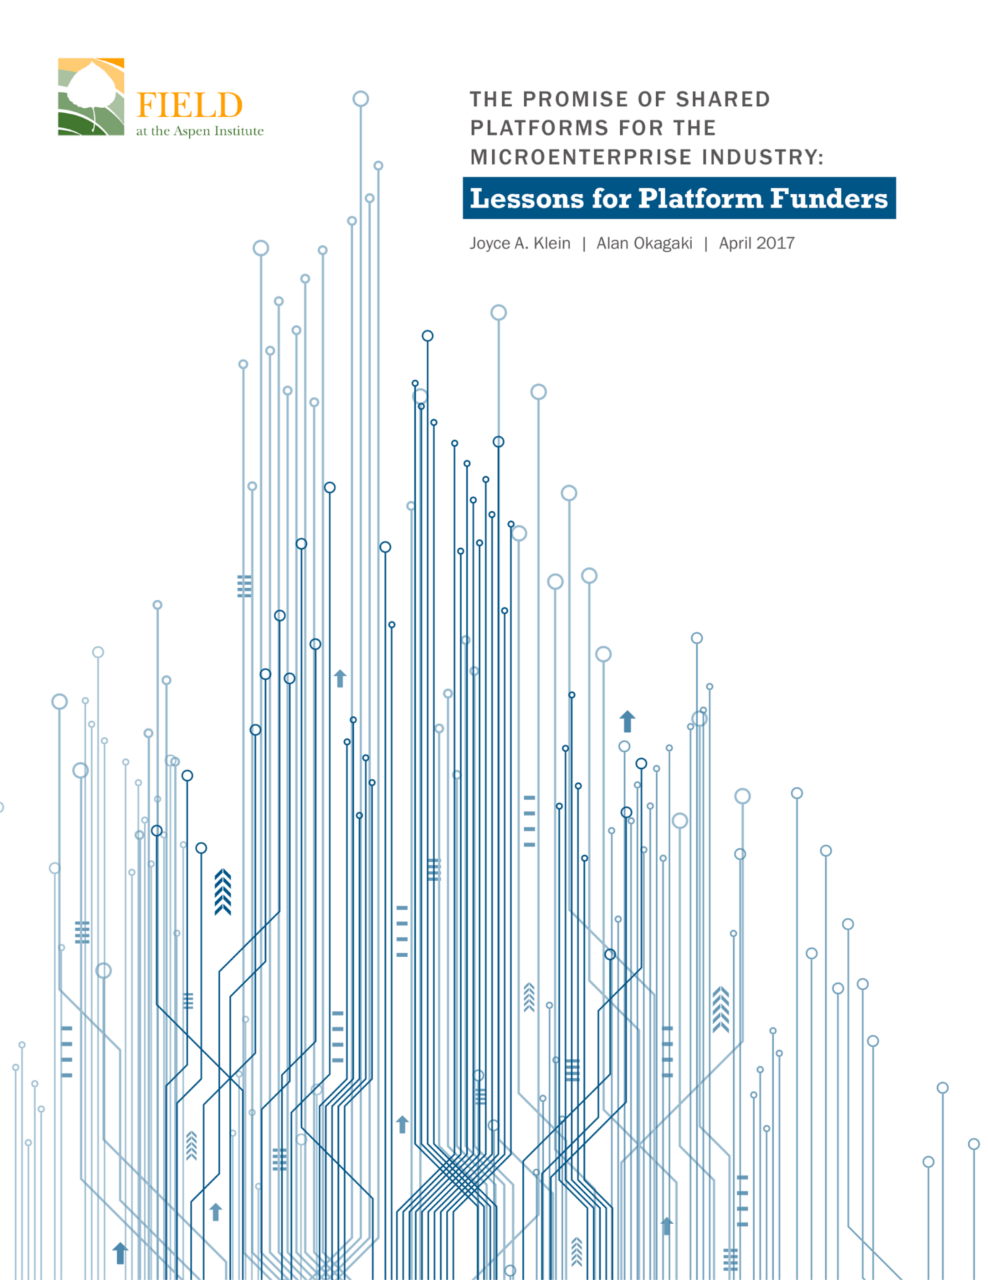 Shared Platforms: Lessons for Funders